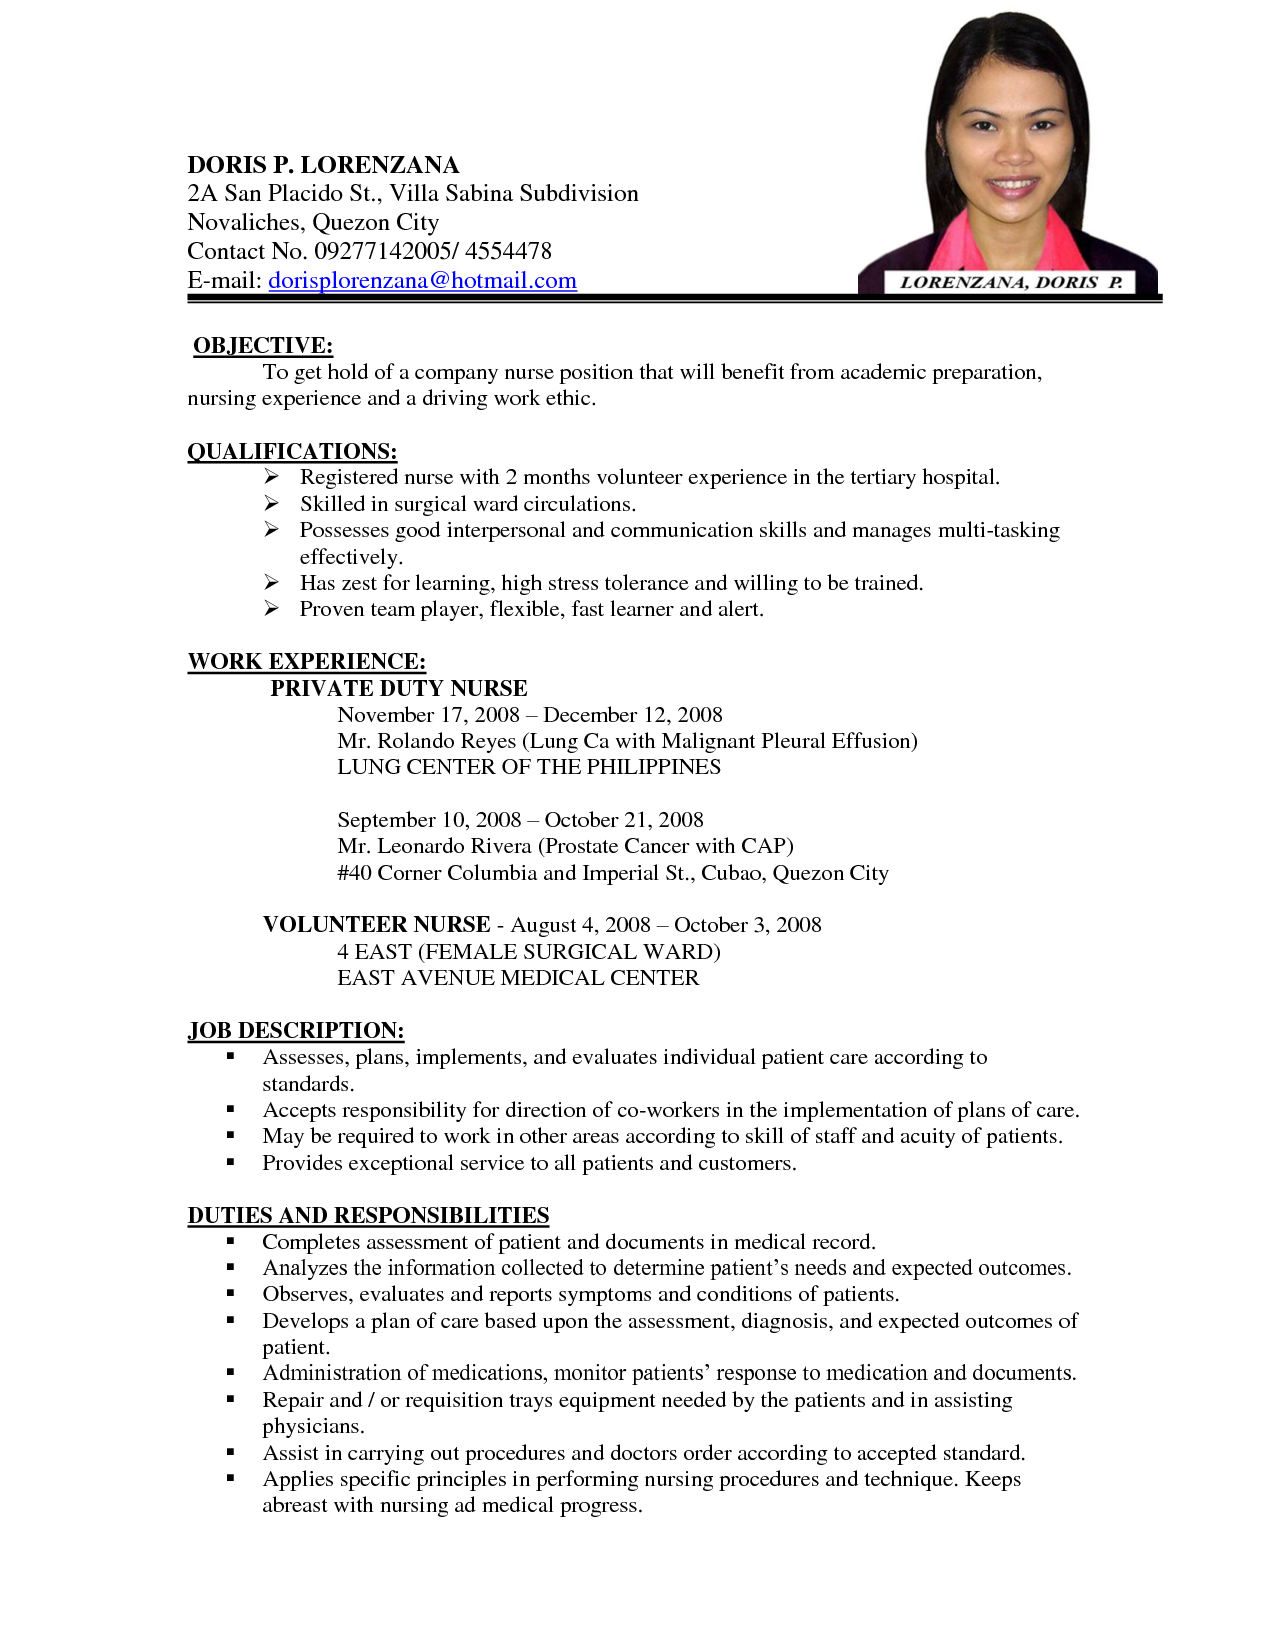 resume format nursing pic nurse template 5